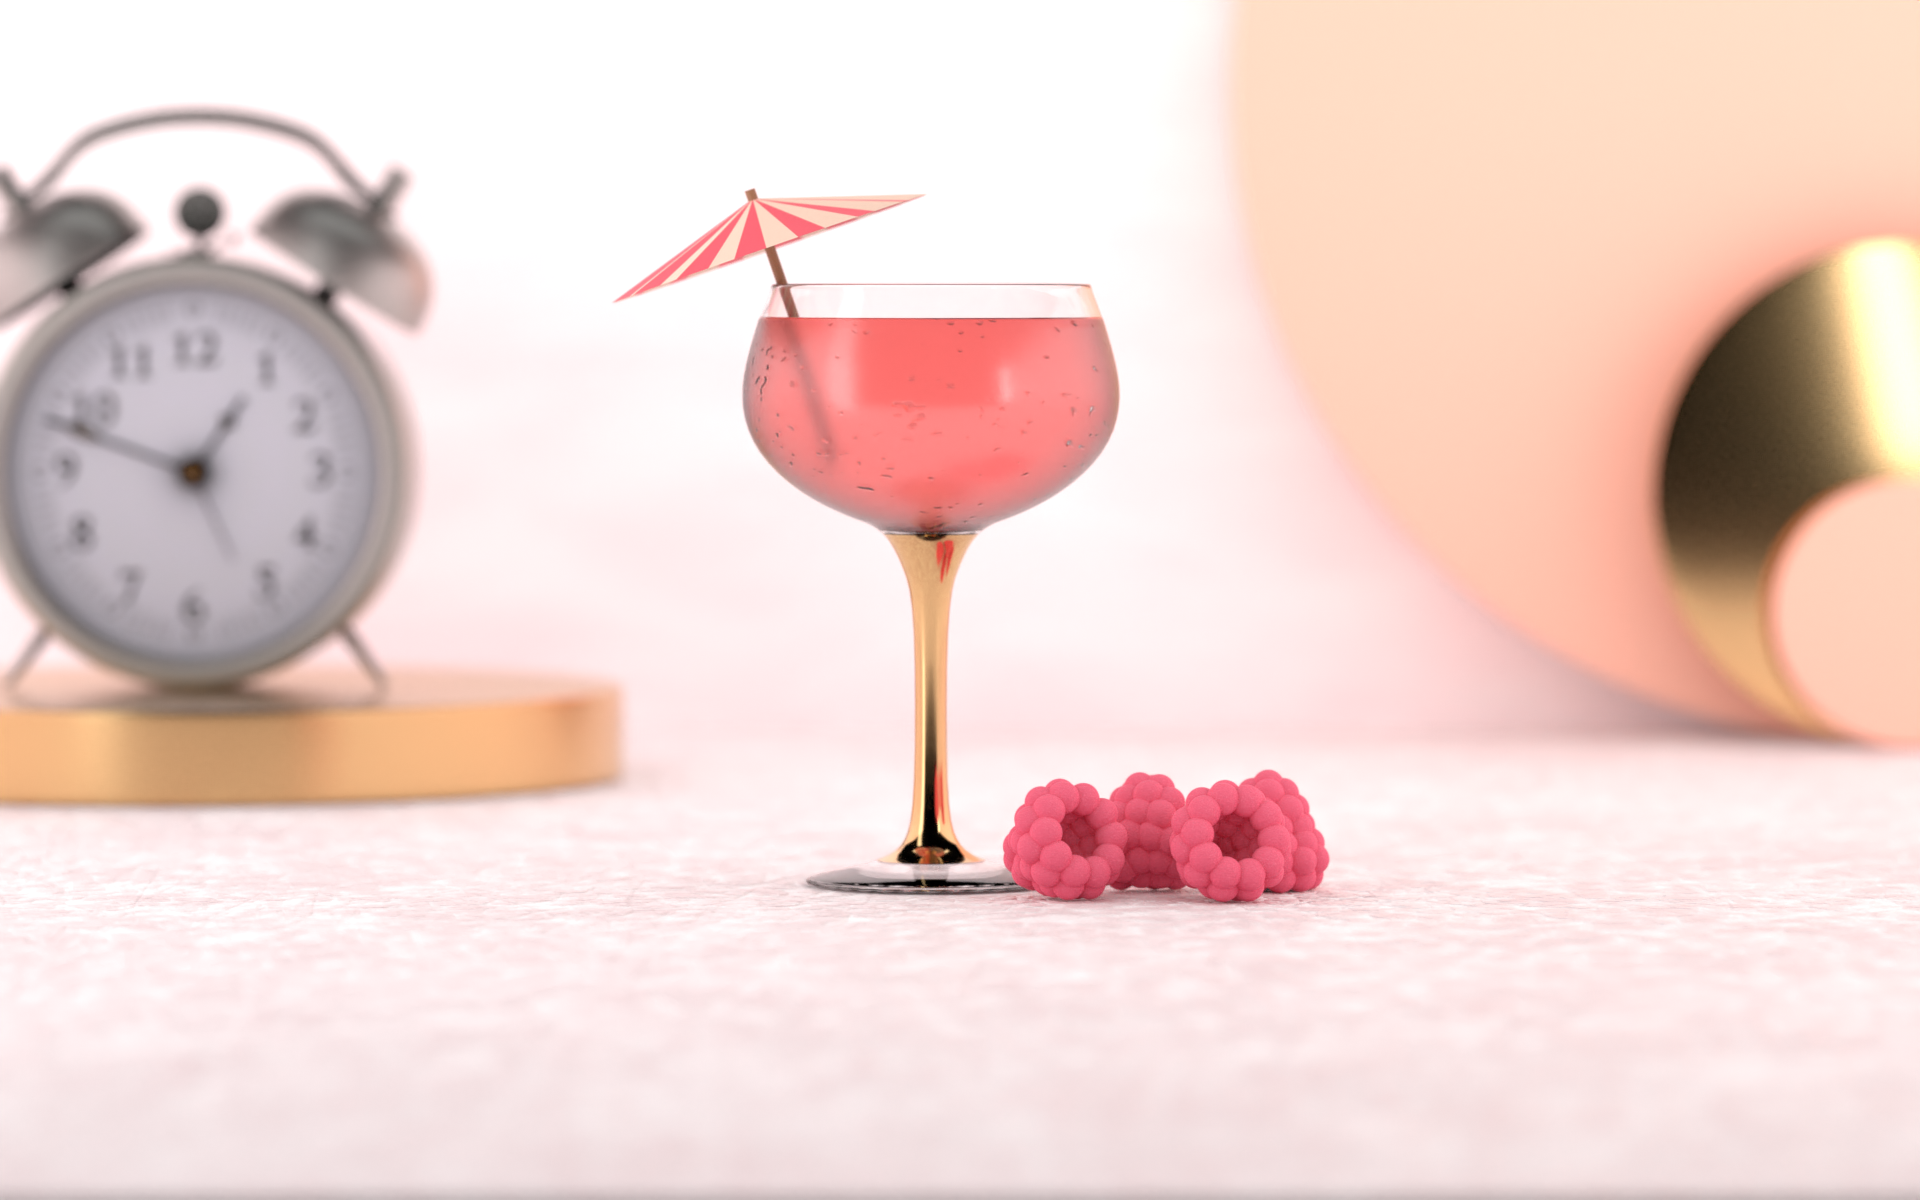 poseidn-3ddrink-3dfood-summercollection-raspberry-1